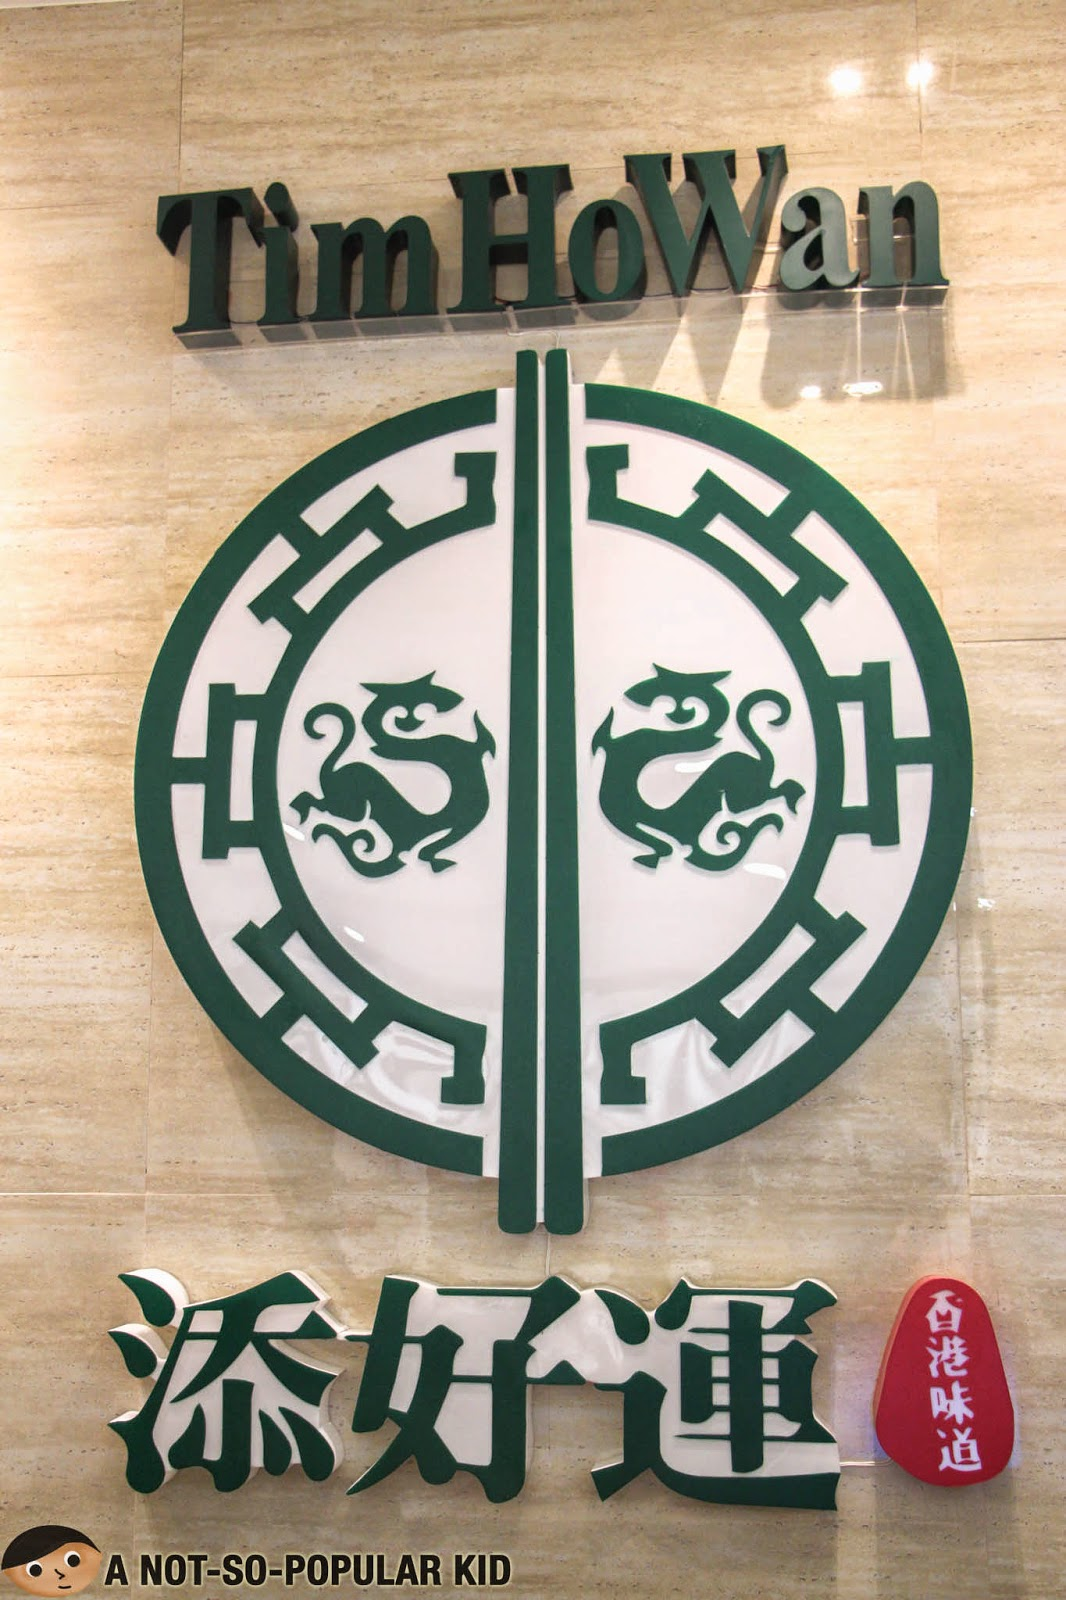 Tim Ho Wan - First Michelin starred restaurant in the Philippines